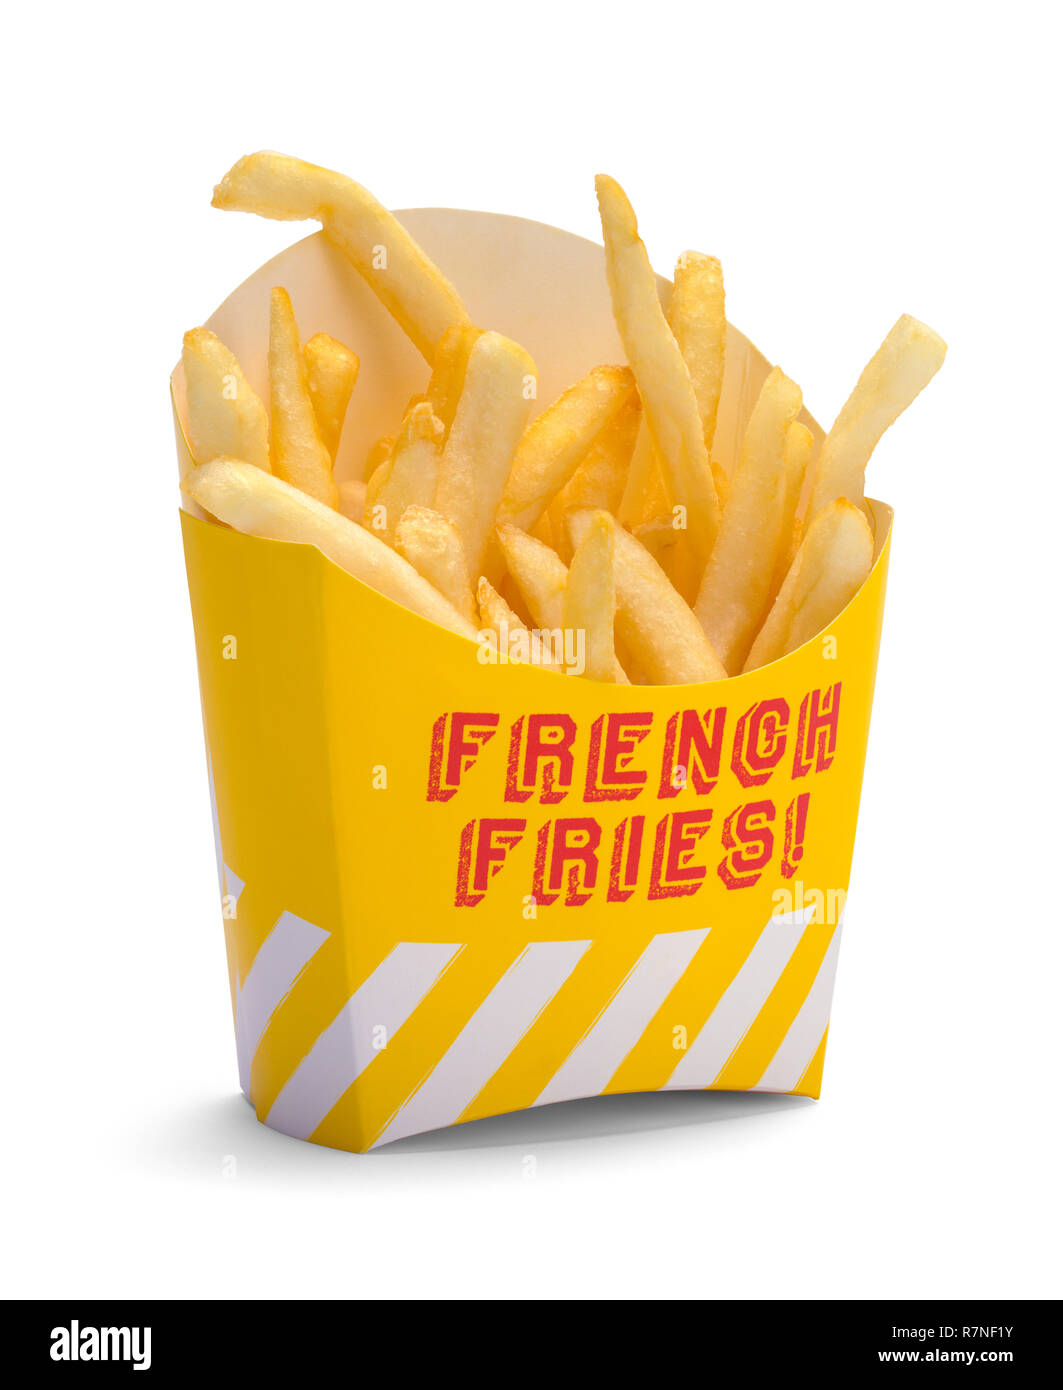 Yellow Box of French Fries Isolated on White Background. - Stock Image